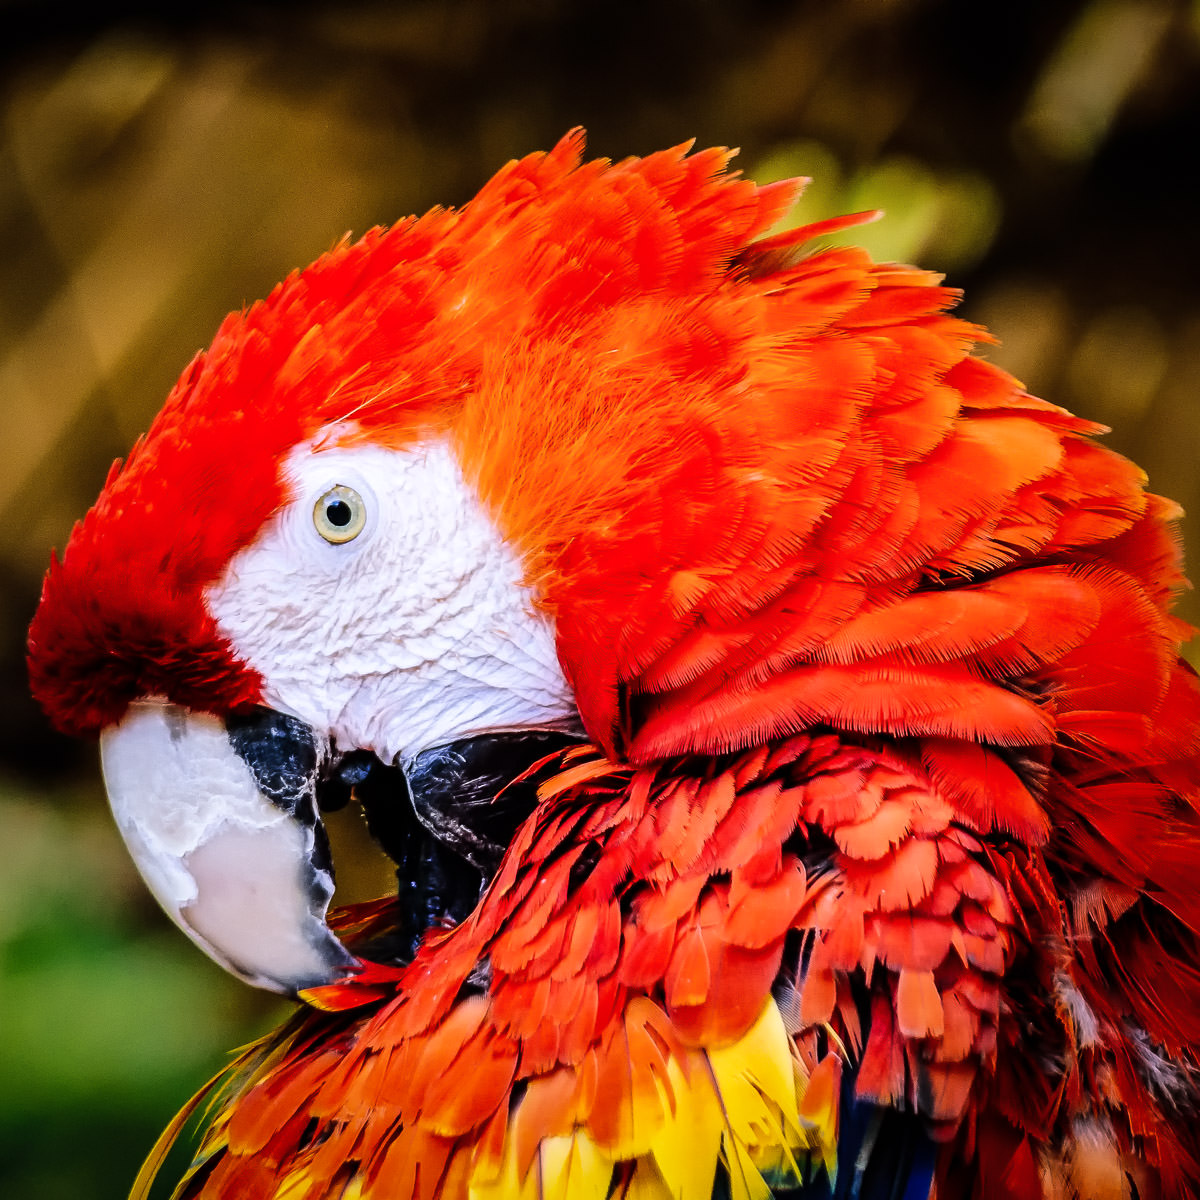 A scarlet macaw at Tyler, Texas' Caldwell Zoo.